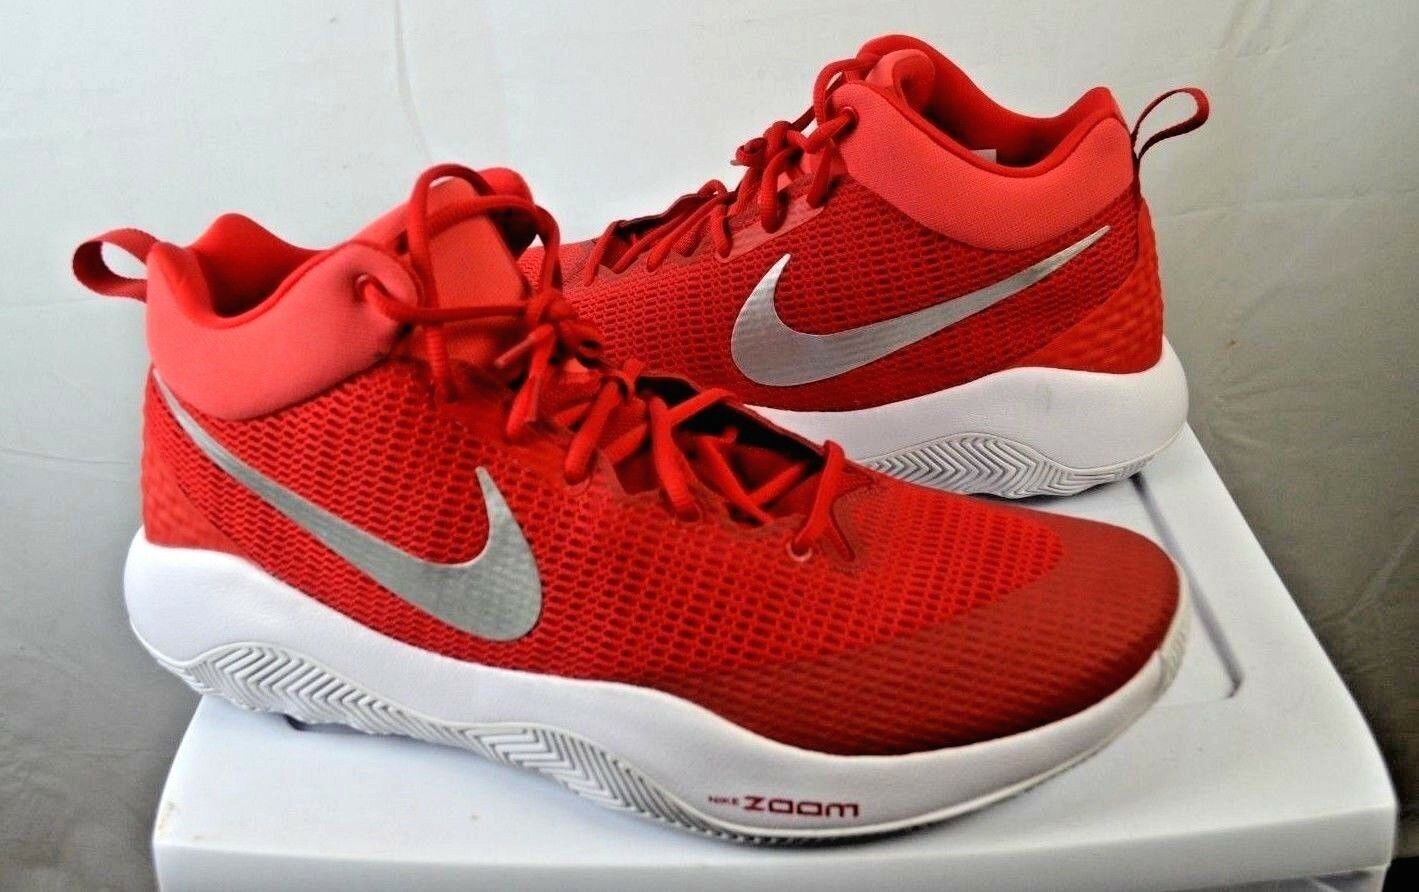 Nike Men's Men's Men's Zoom Rev TB Basketball Sneakers Size 18 University Red Silver NWOT 9bc9a2